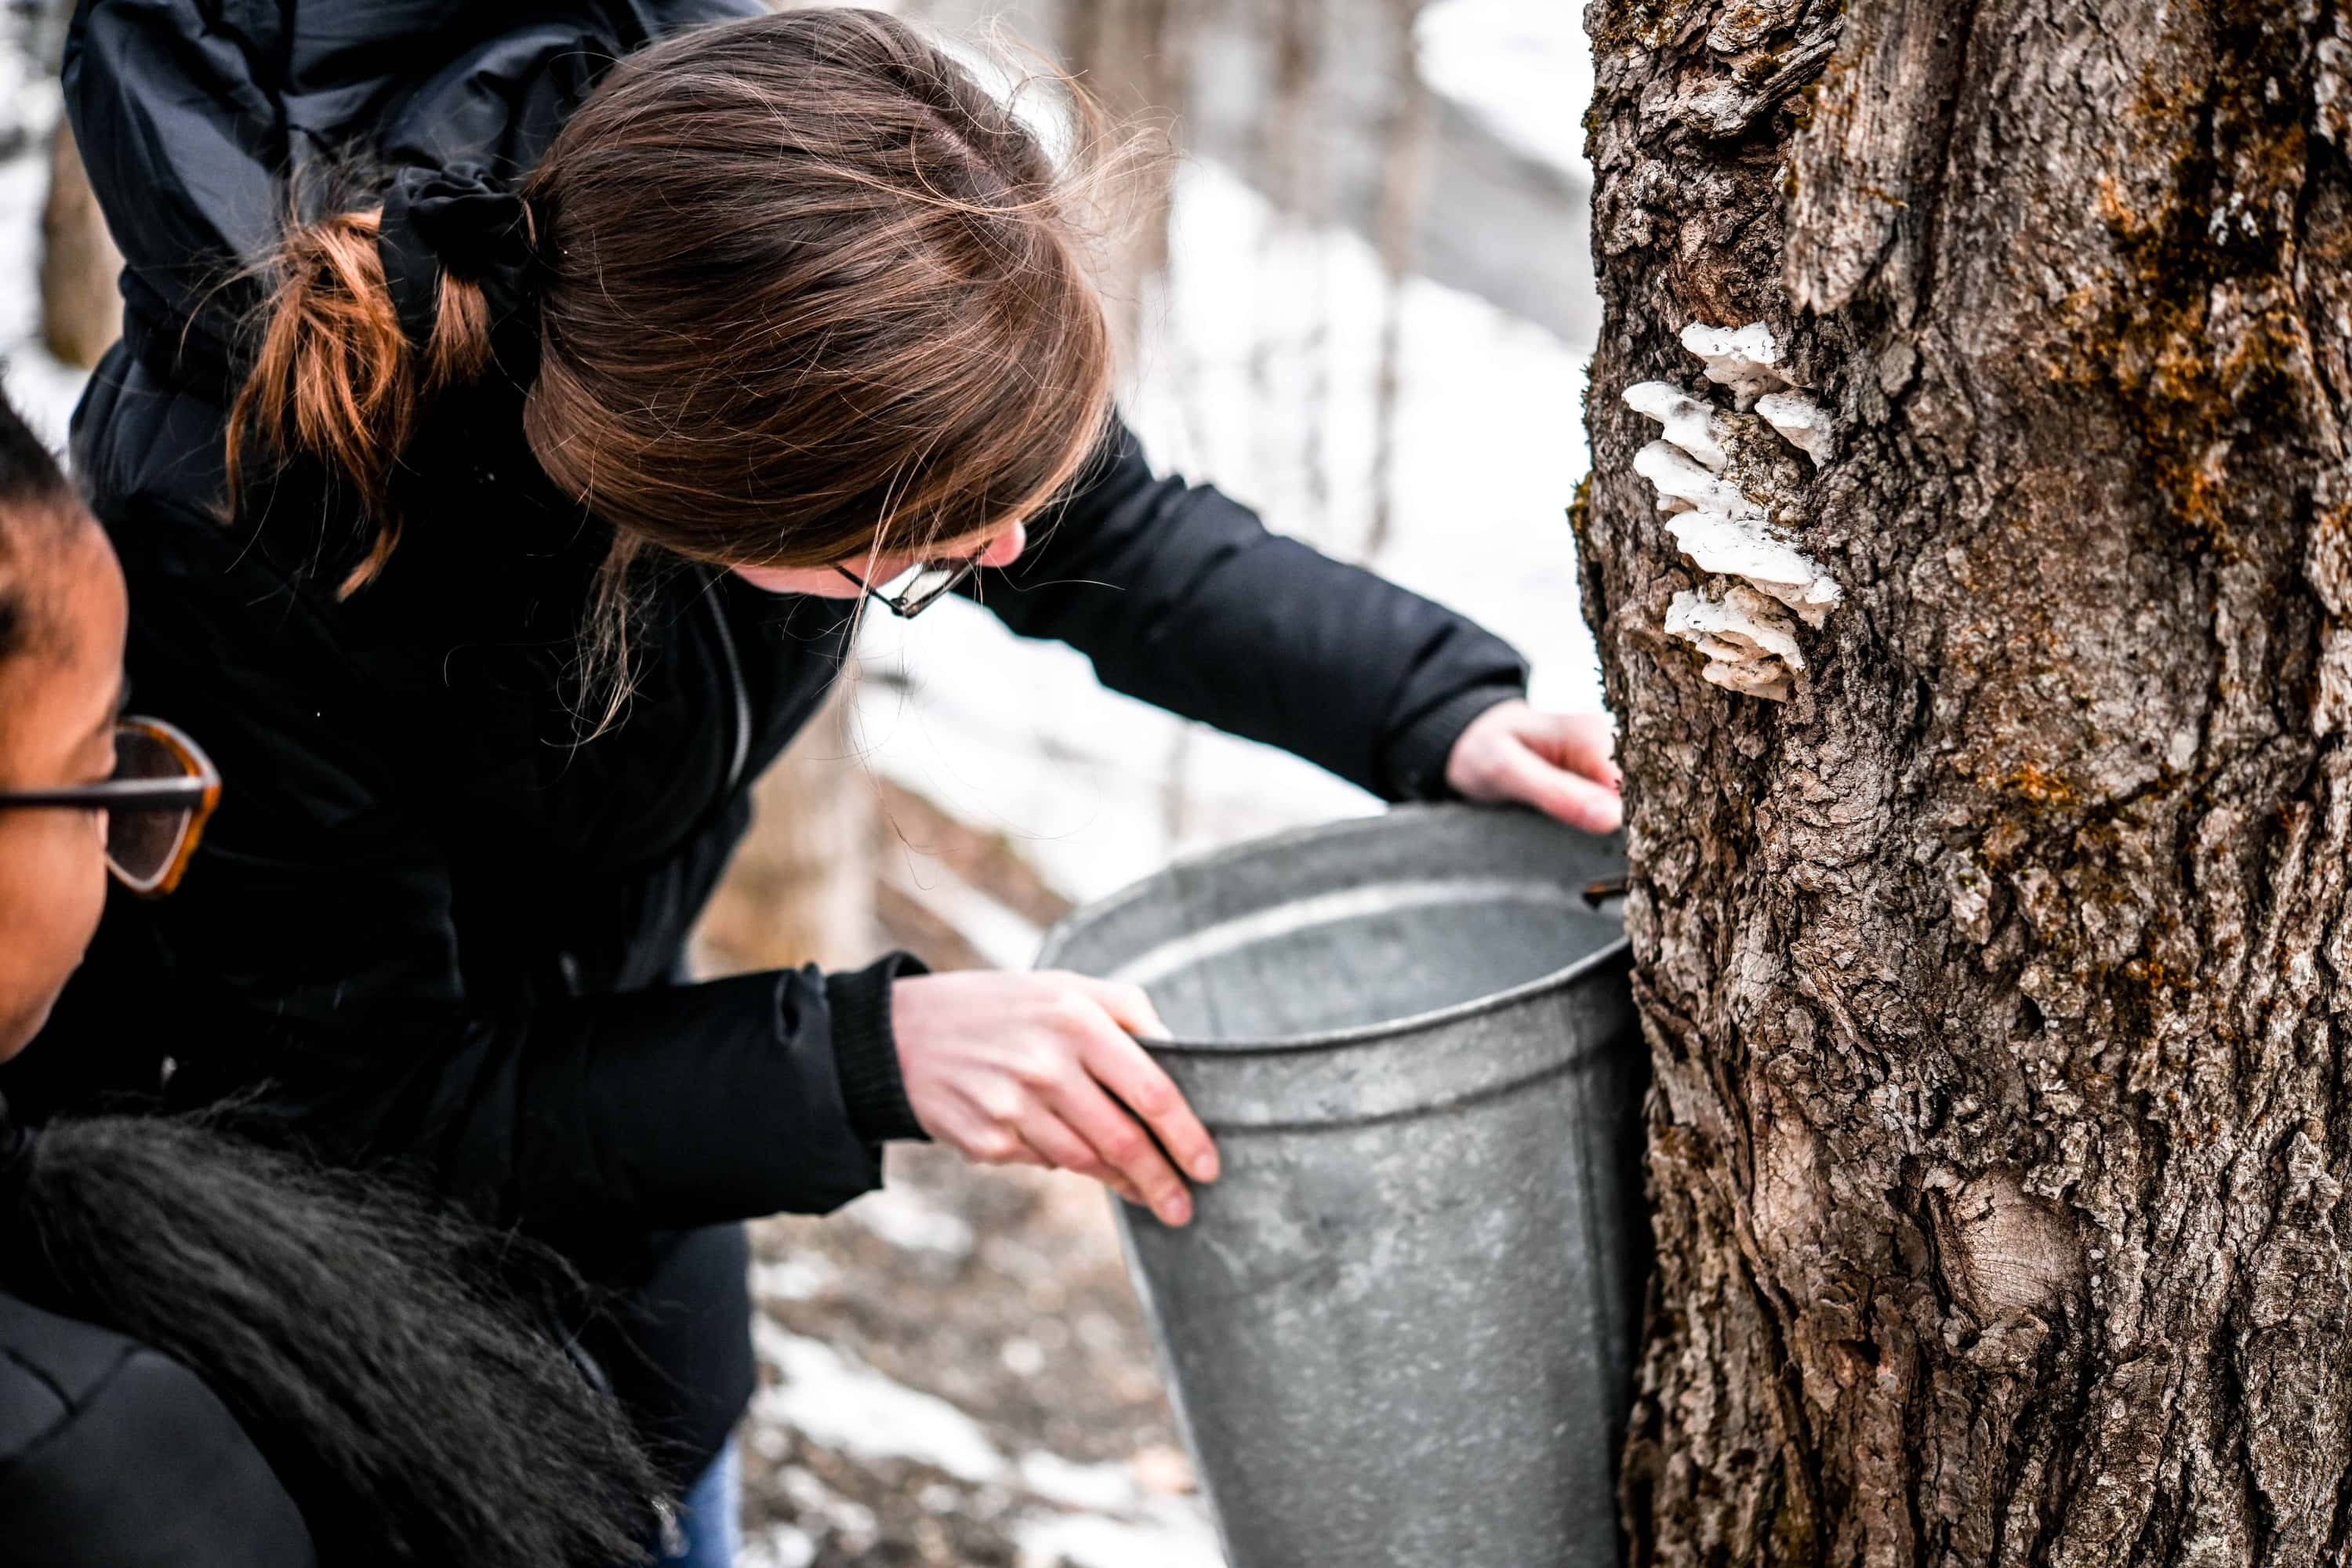 Person affixing bucket to maple tree tap to collect maple sap